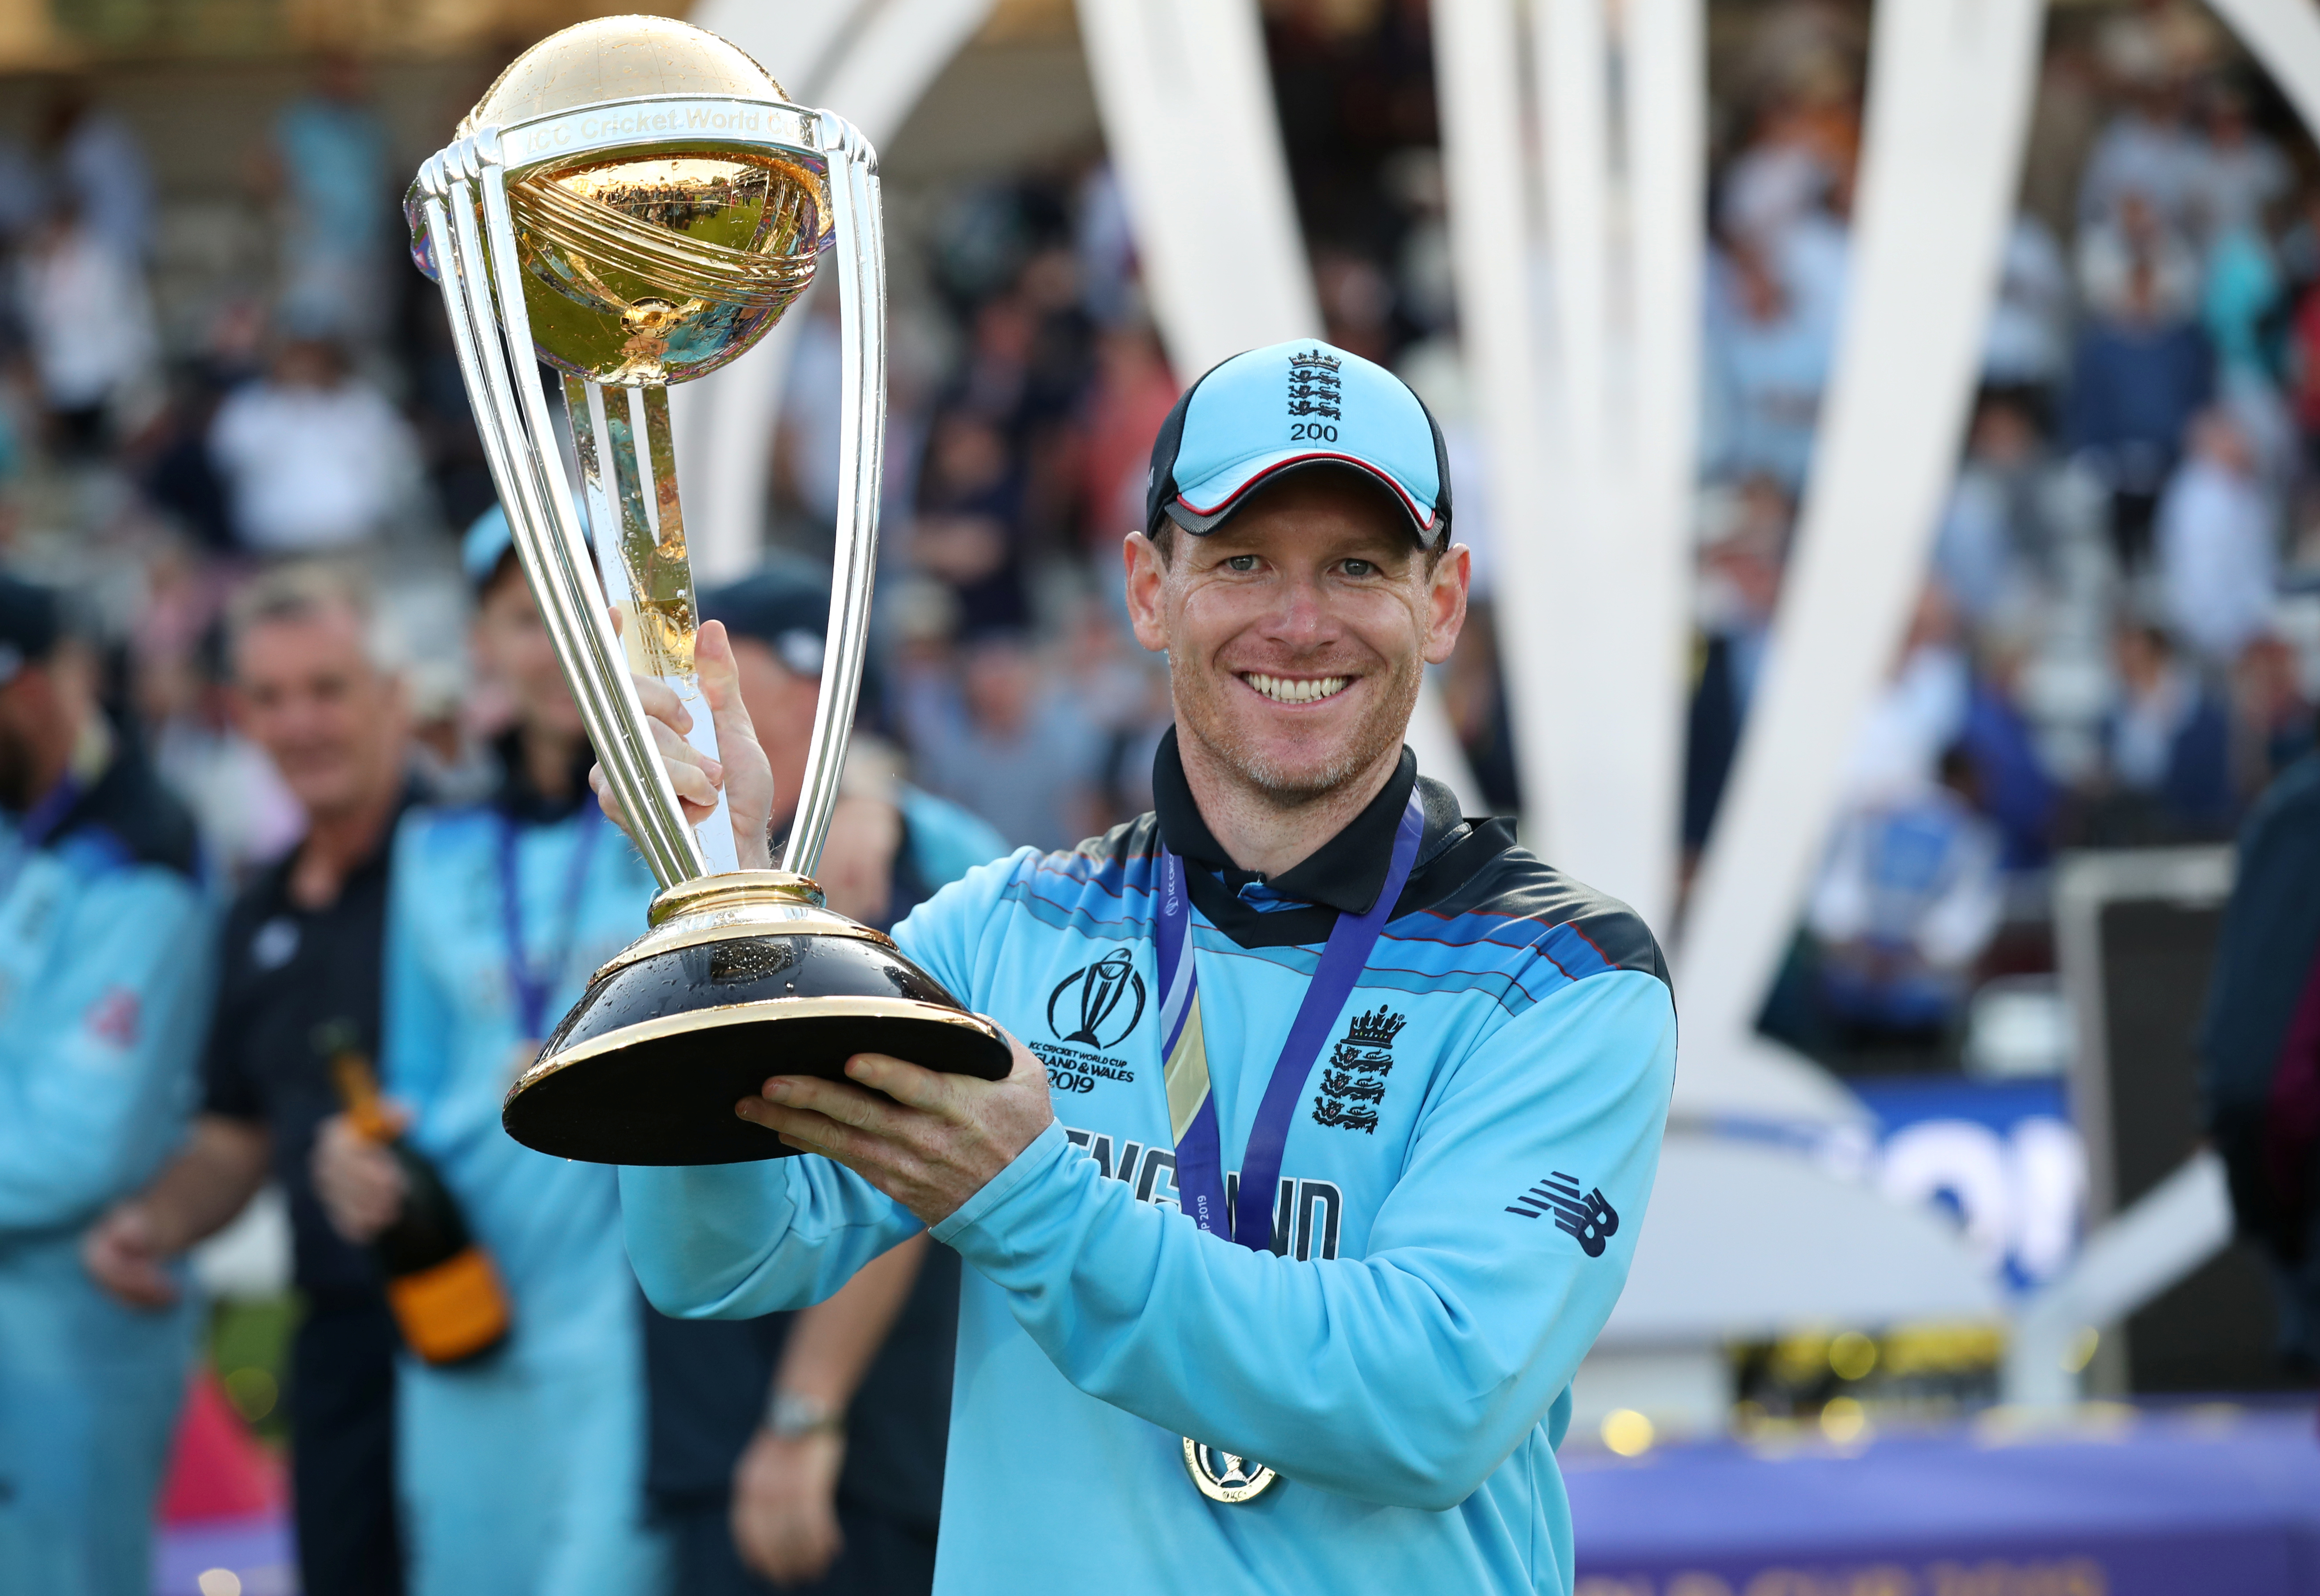 Cricket - ICC Cricket World Cup Final - New Zealand v England - Lord's, London, Britain - July 14, 2019   England's Eoin Morgan celebrates winning the world cup with the trophy   Action Images via Reuters/Peter Cziborra